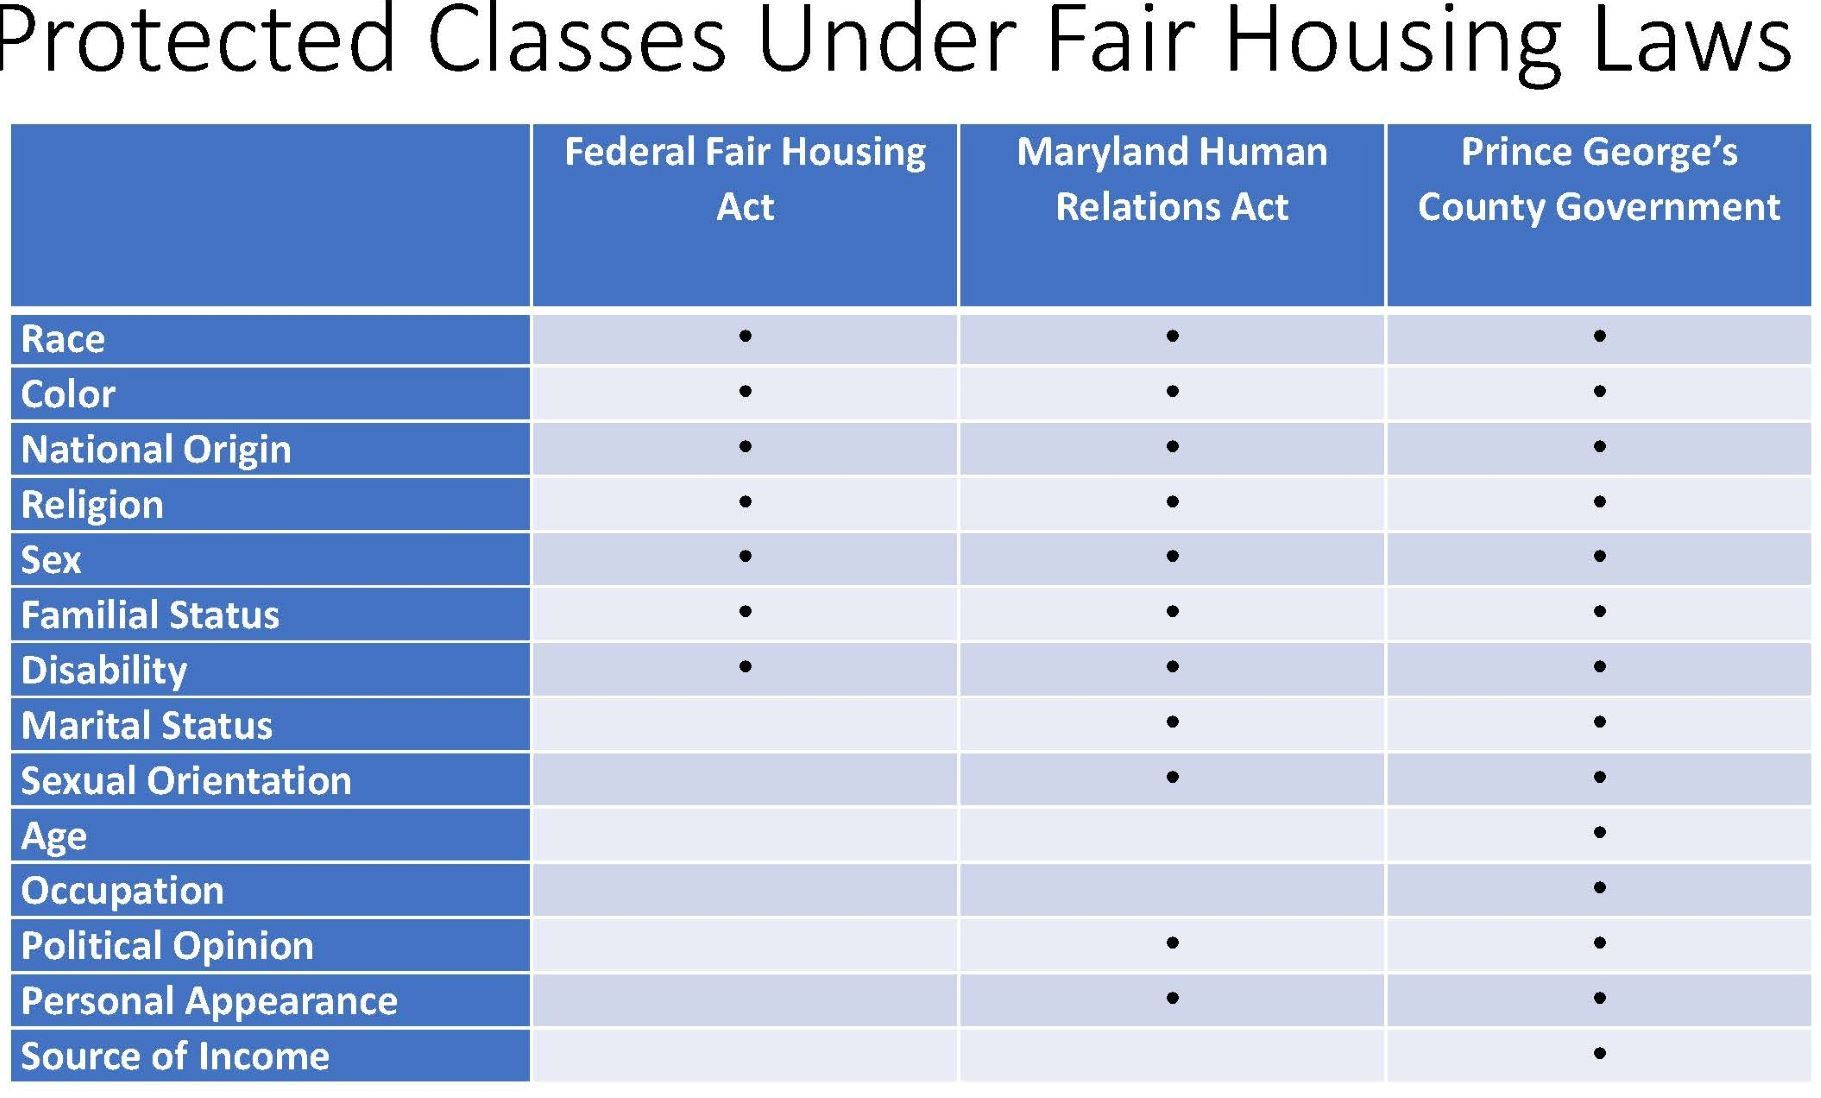 Fair Housing Protected Classes In Prince George's County